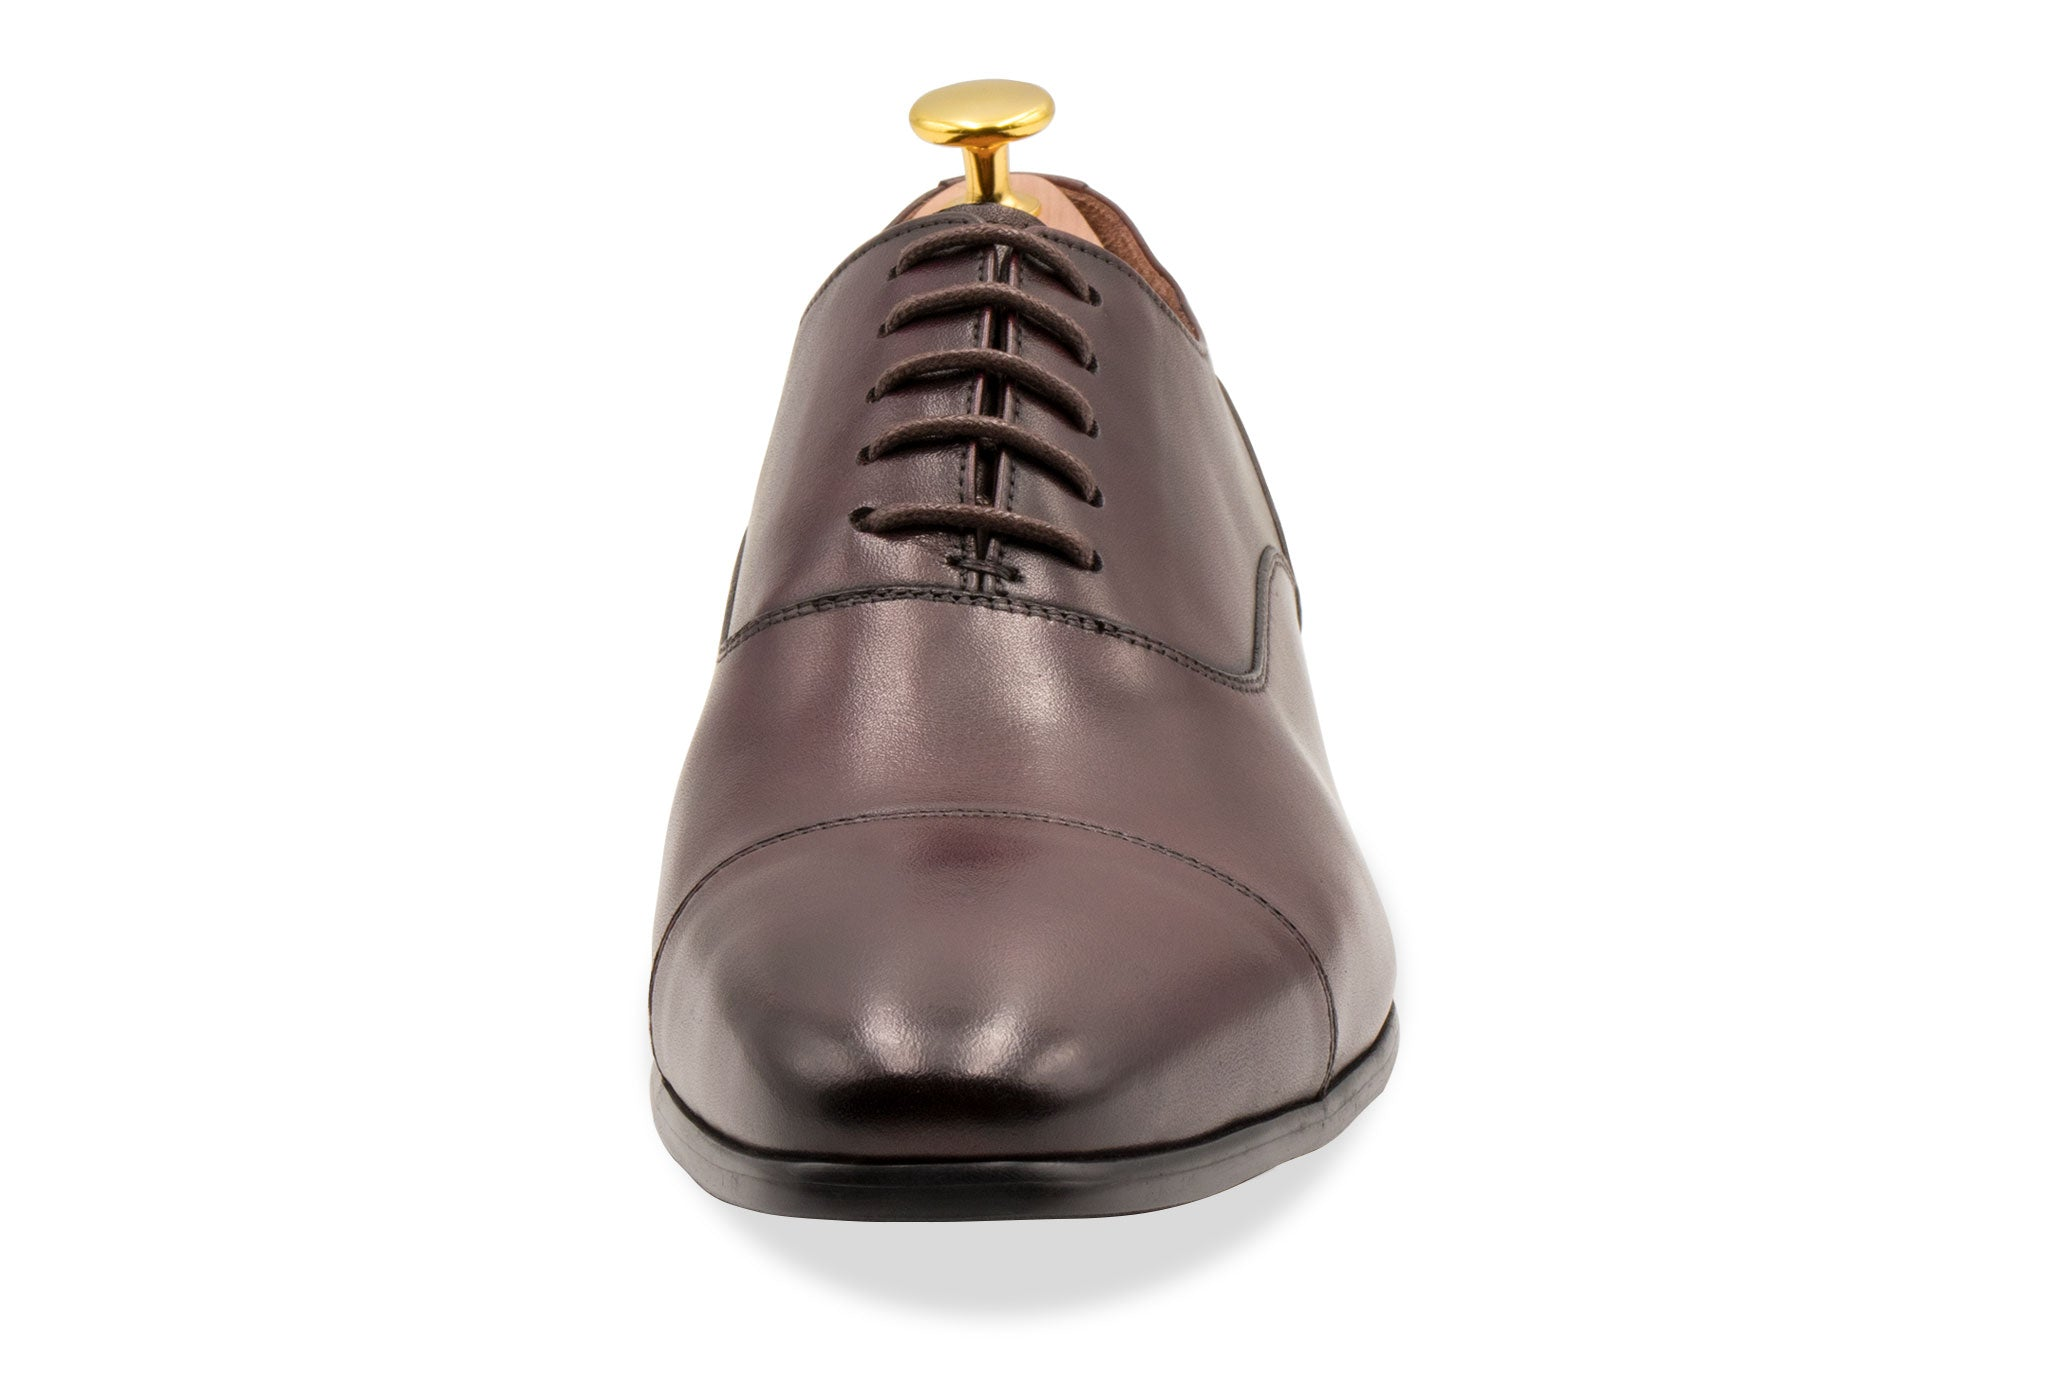 Corrientes Tassle Chestnut Loafer Leather Shoes